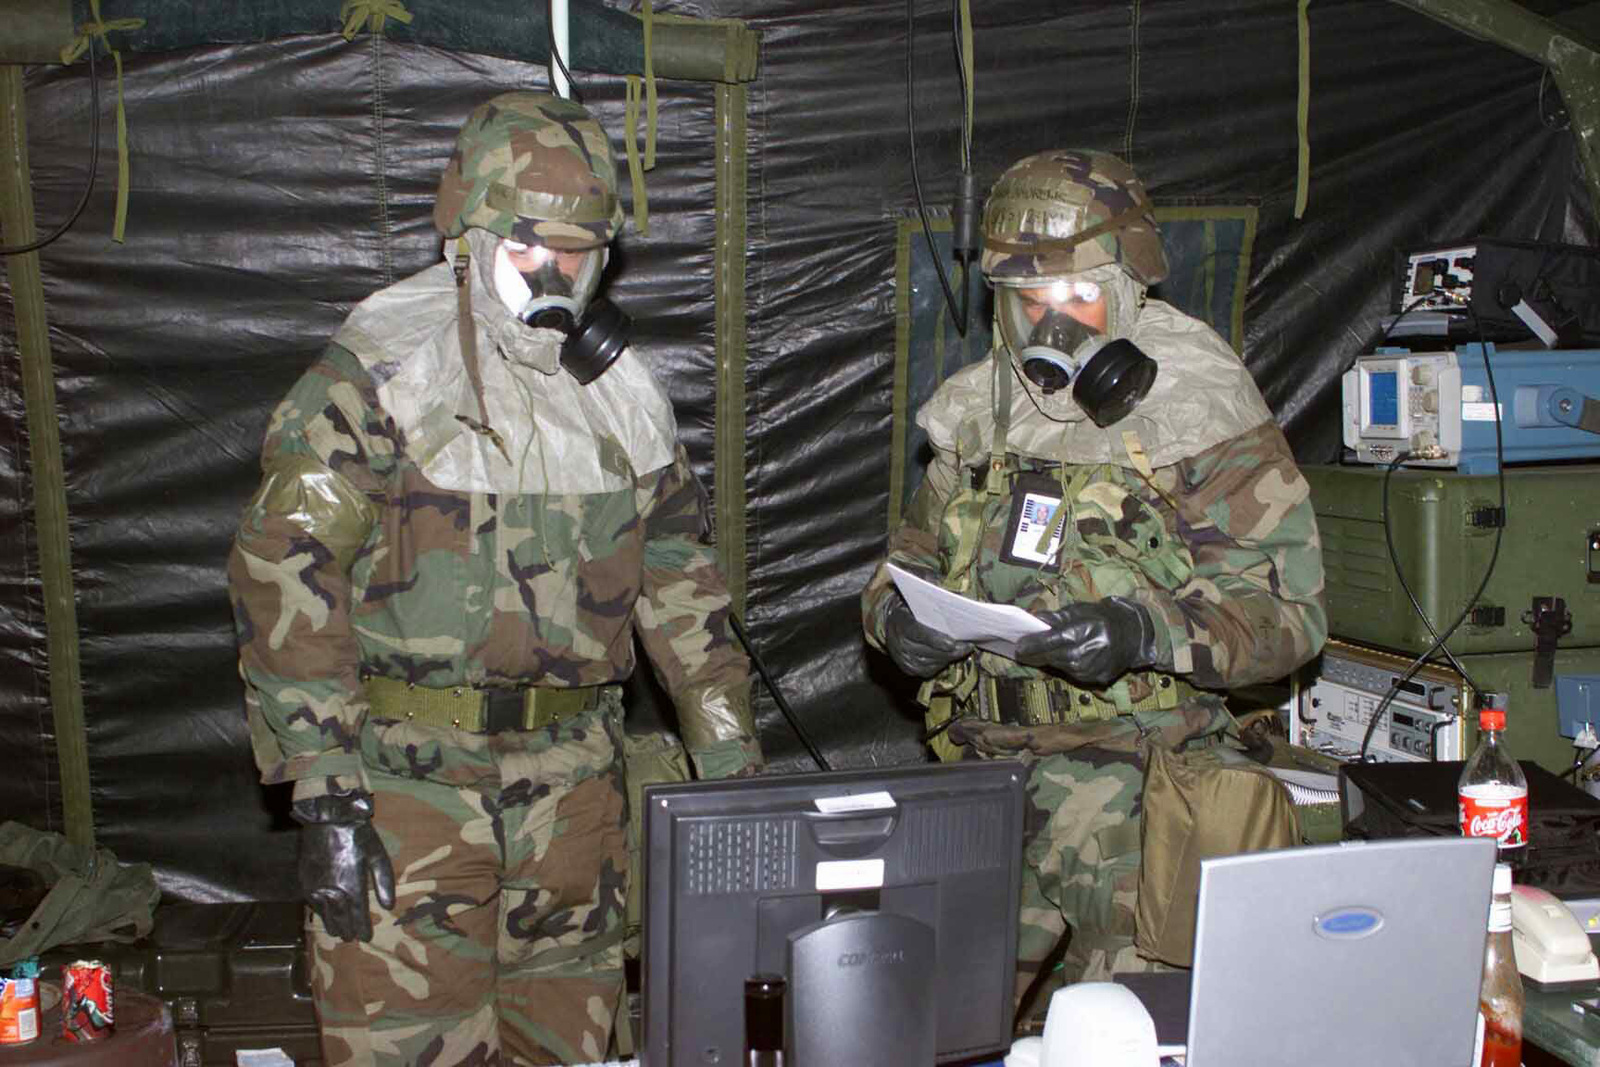 Wearing Mission-Oriented Protective Postures level 4 (MOPP-4) over wear, US Air Force (USAF) AIRMAN First Class (A1C) Mikhail Woltering, left and SENIOR AIRMAN (SRA) Joseph Andrews, right, both satellite communications specialists, with the 52nd Communications Squadron (CS), Spangdahlem Air Base (AB), Germany, carry on with the mission during an alarm, in support of local Exercise Operation Winter Chill 2002